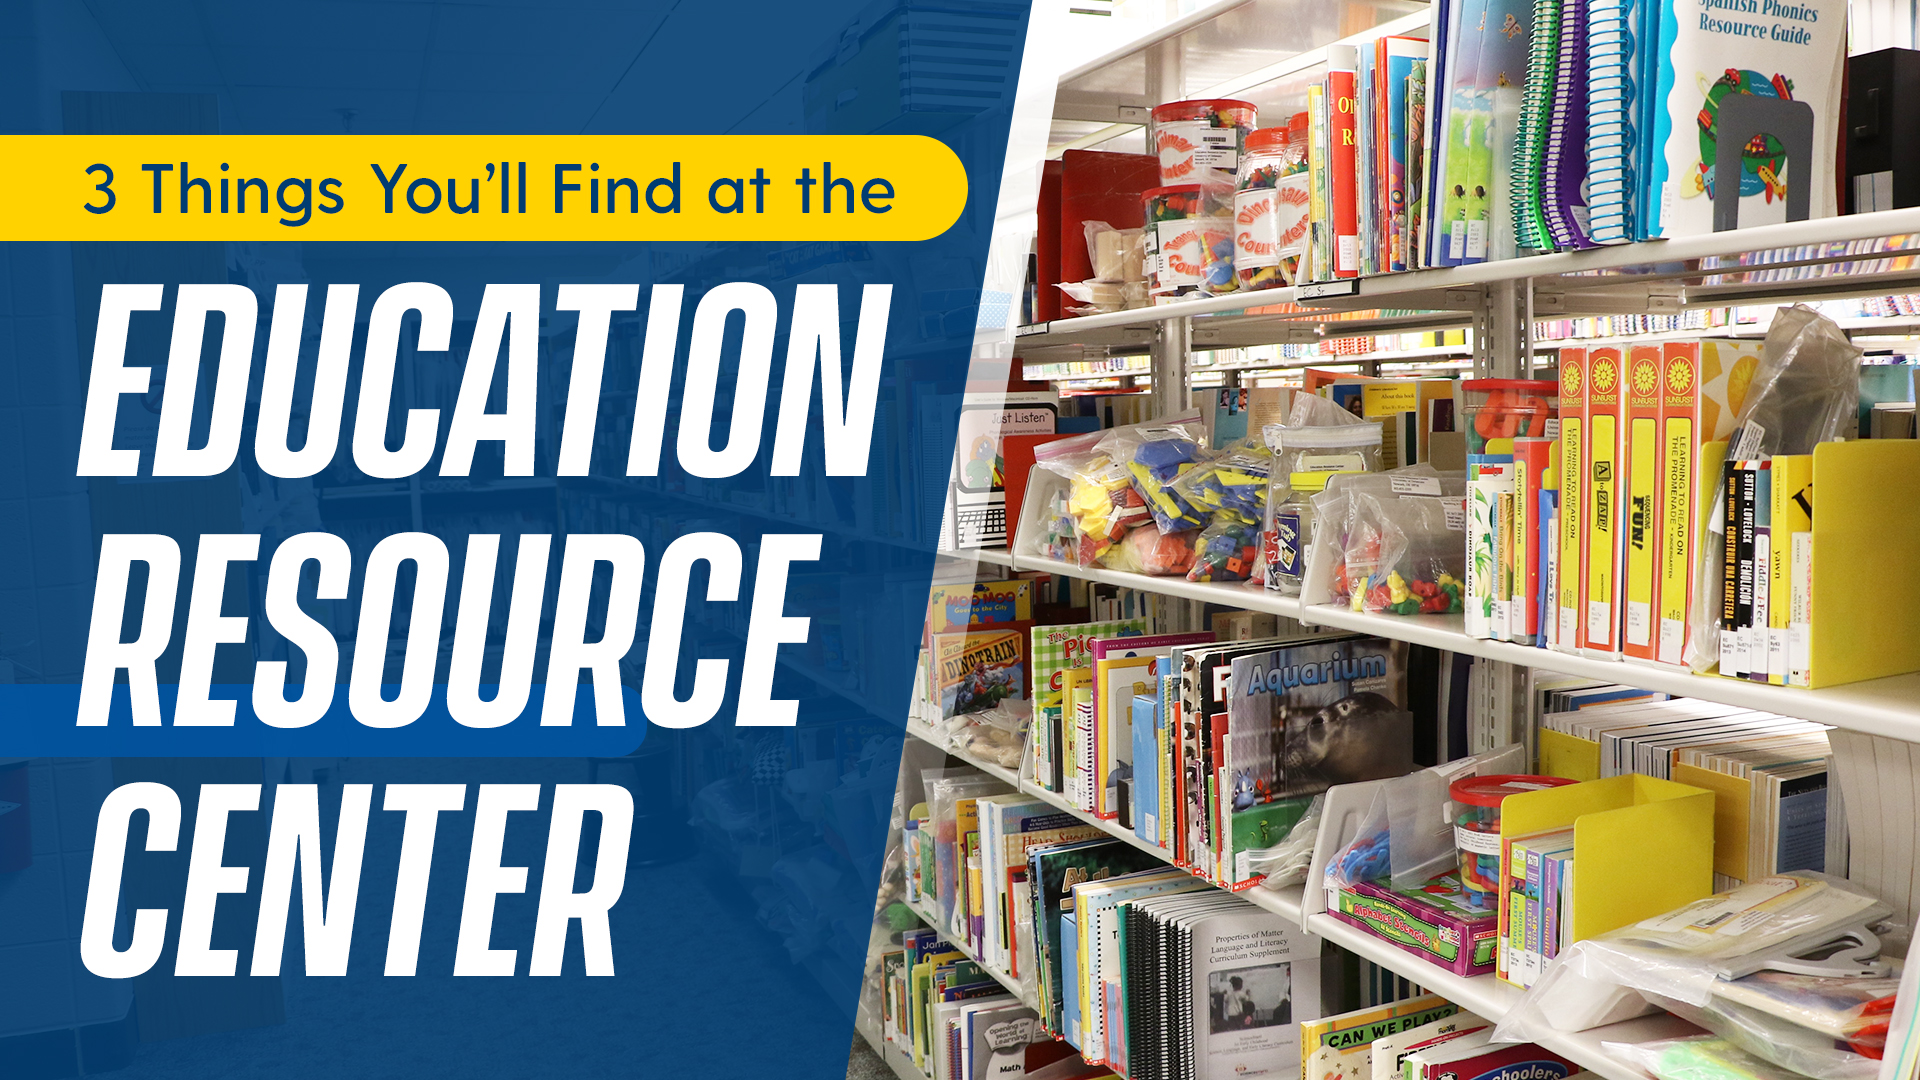 3 Things You'll Find at the Education Resource Center